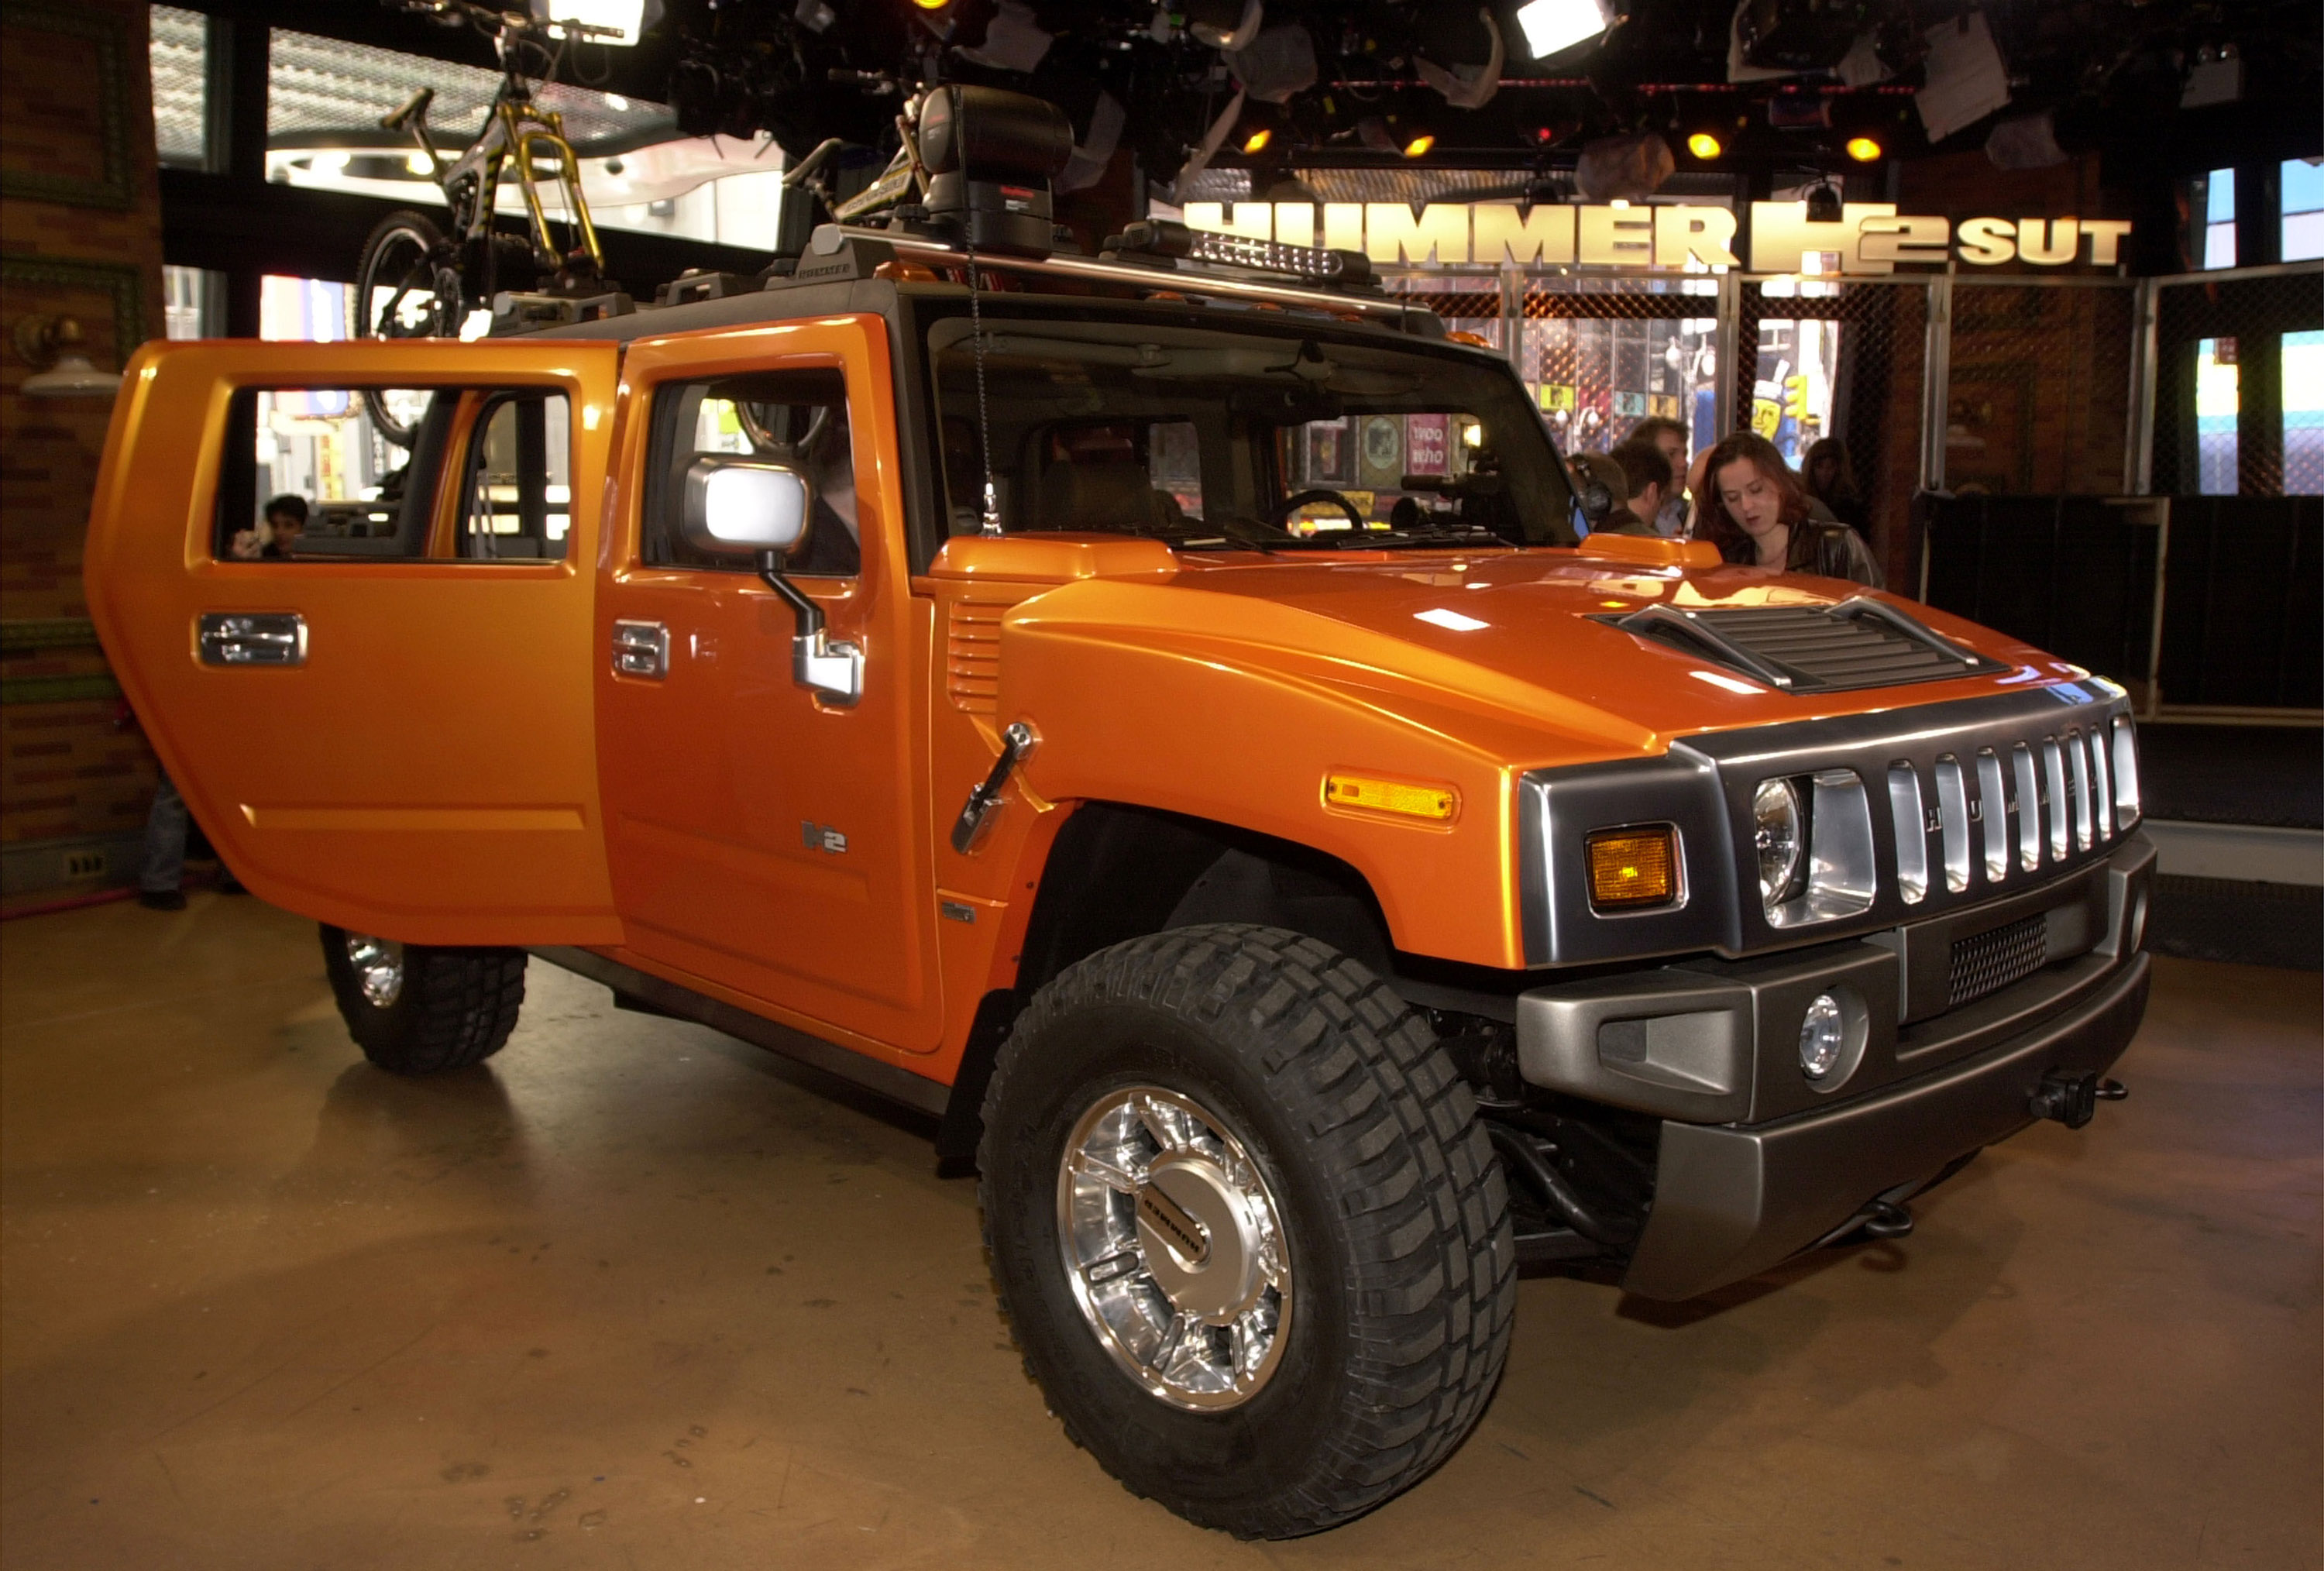 The new General Motors concept Hummer H2 sport utility truck is on display April 10, 2001 in New York City. (Photo by Spencer Platt/Newsmakers)